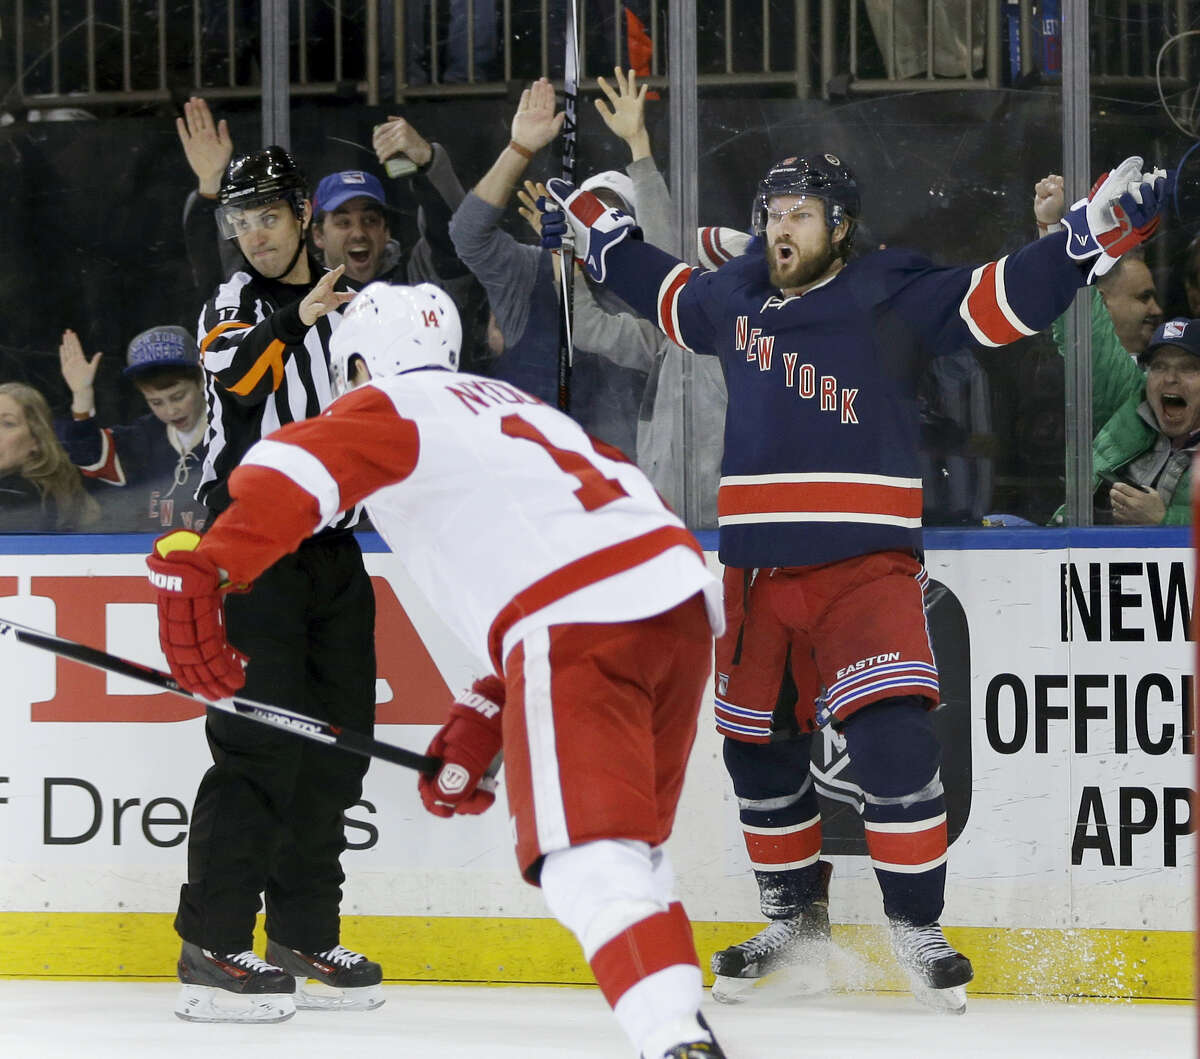 New York Rangers' Kevin Klein, right, reacts after scoring the winning goal during the overtime period of the NHL hockey game against the Detroit Red Wings, Sunday, Feb. 21, 2016, in New York. The Rangers defeated the Red Wings in overtime 1-0. (AP Photo/Seth Wenig)